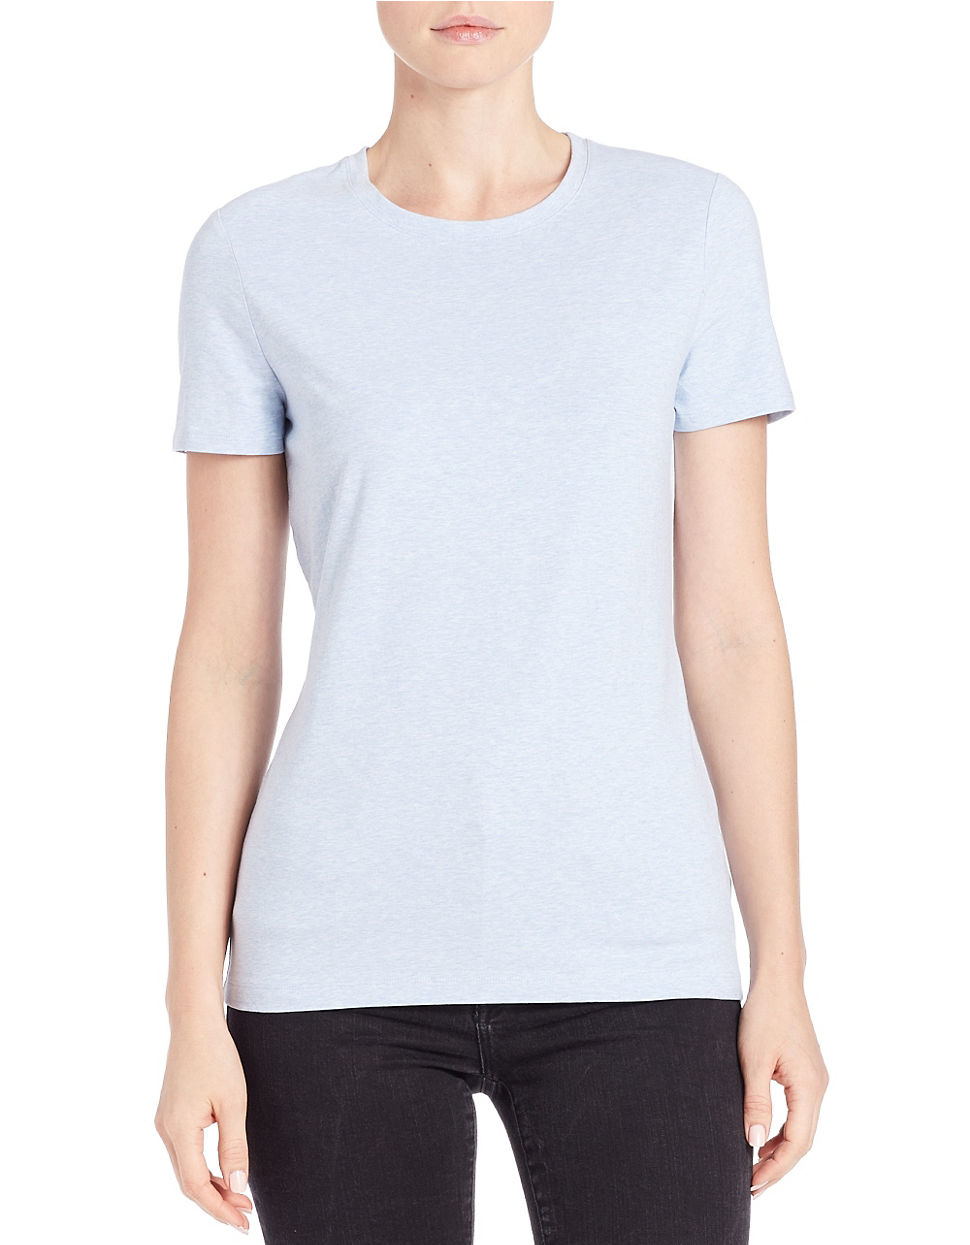 6603e08715573 Lord   Taylor Petite Crewneck Tee in Blue - Lyst